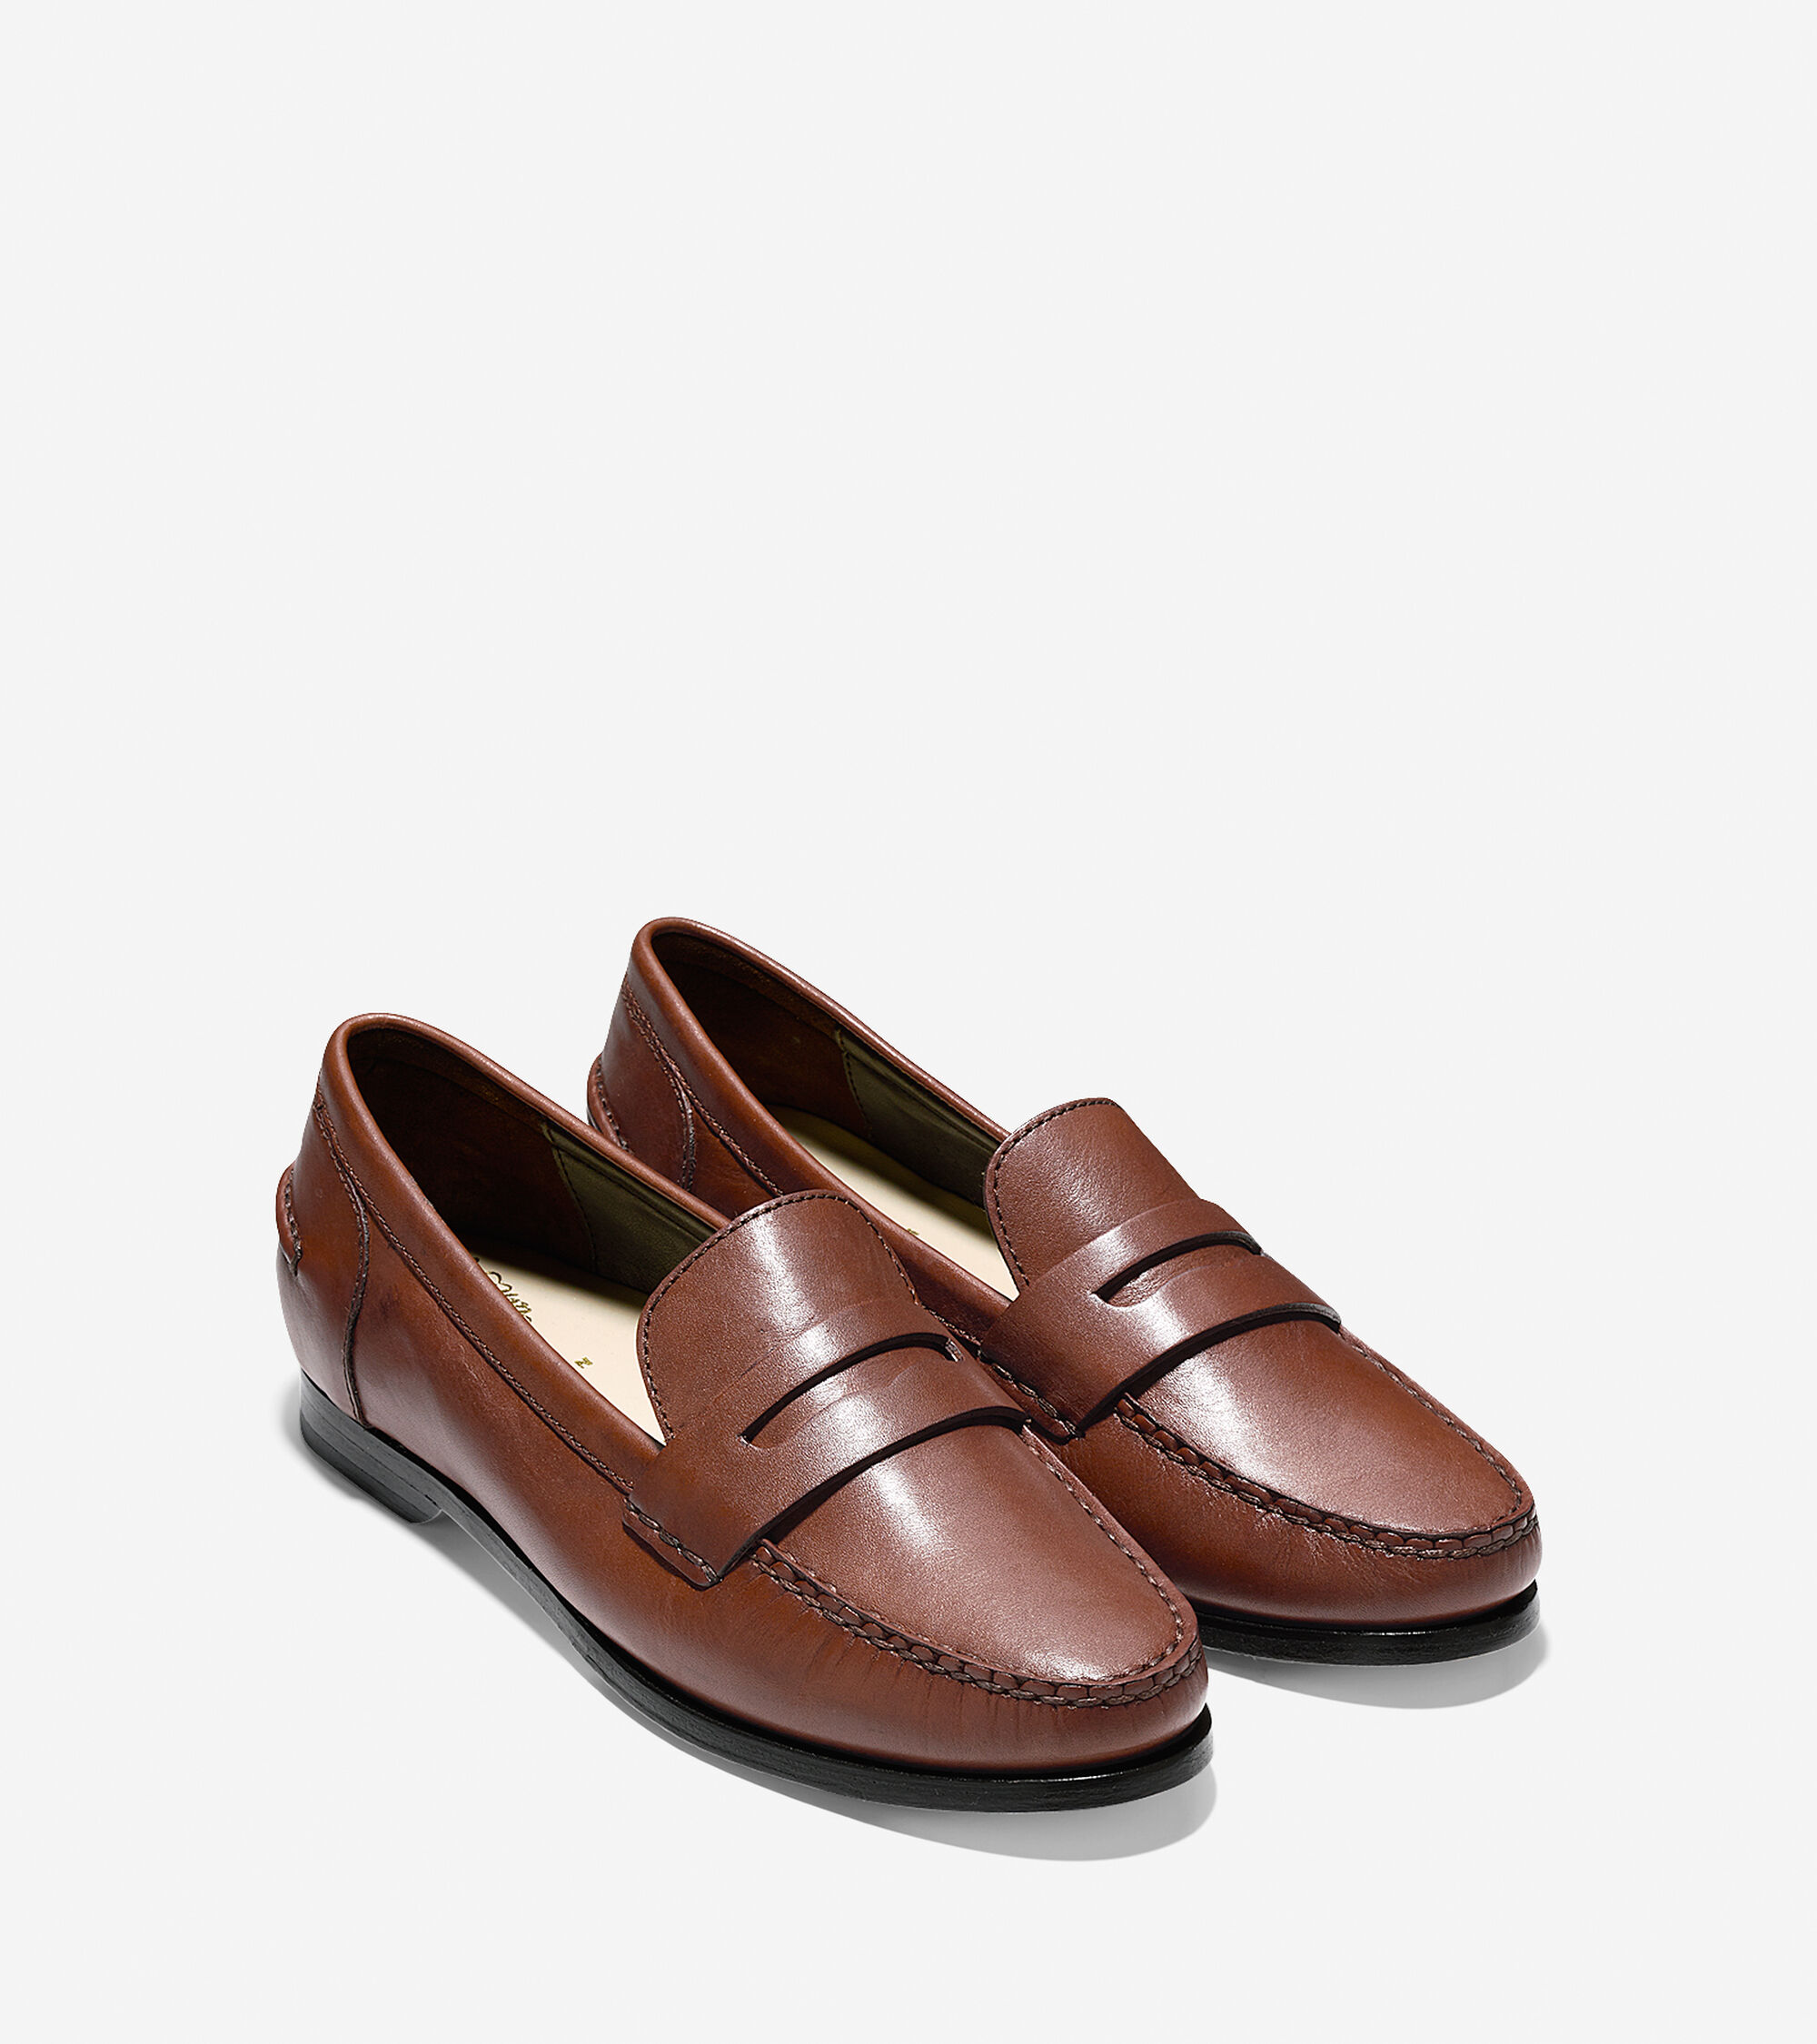 Women's Pinch Grand Penny Loafers in Sequoia   Cole Haan